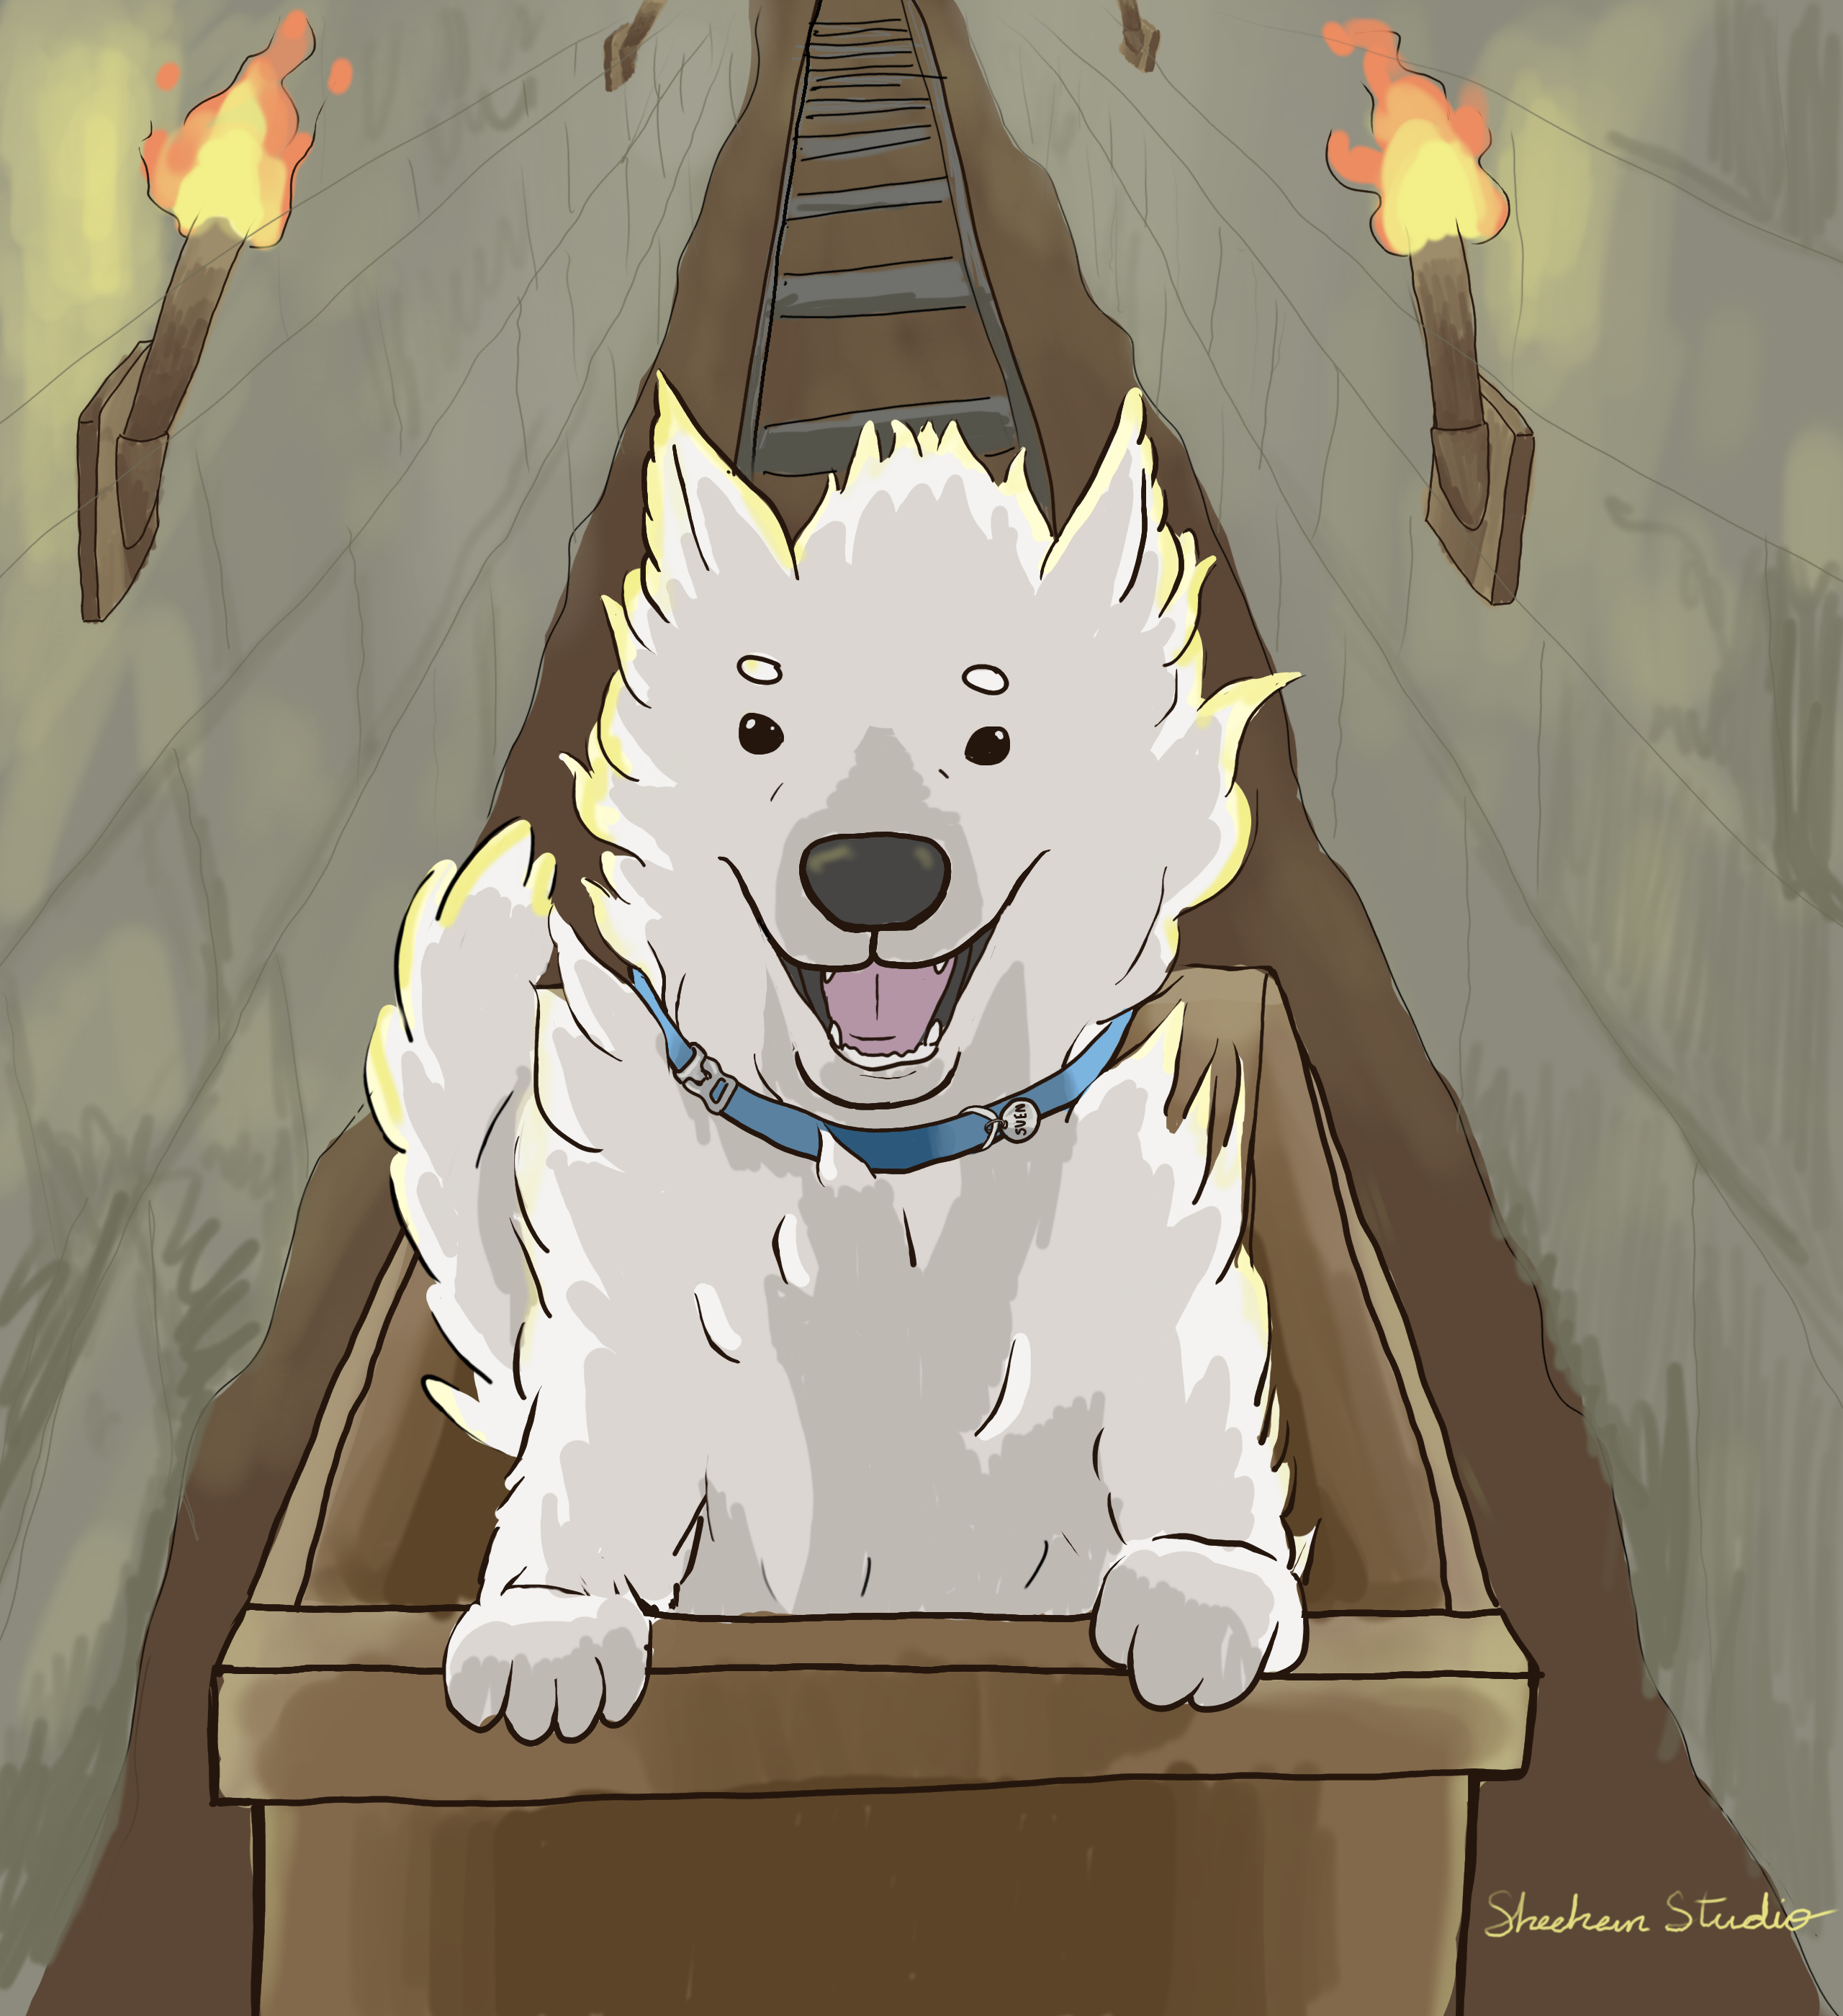 Sven's roller coaster ride. Made a reddit account just to